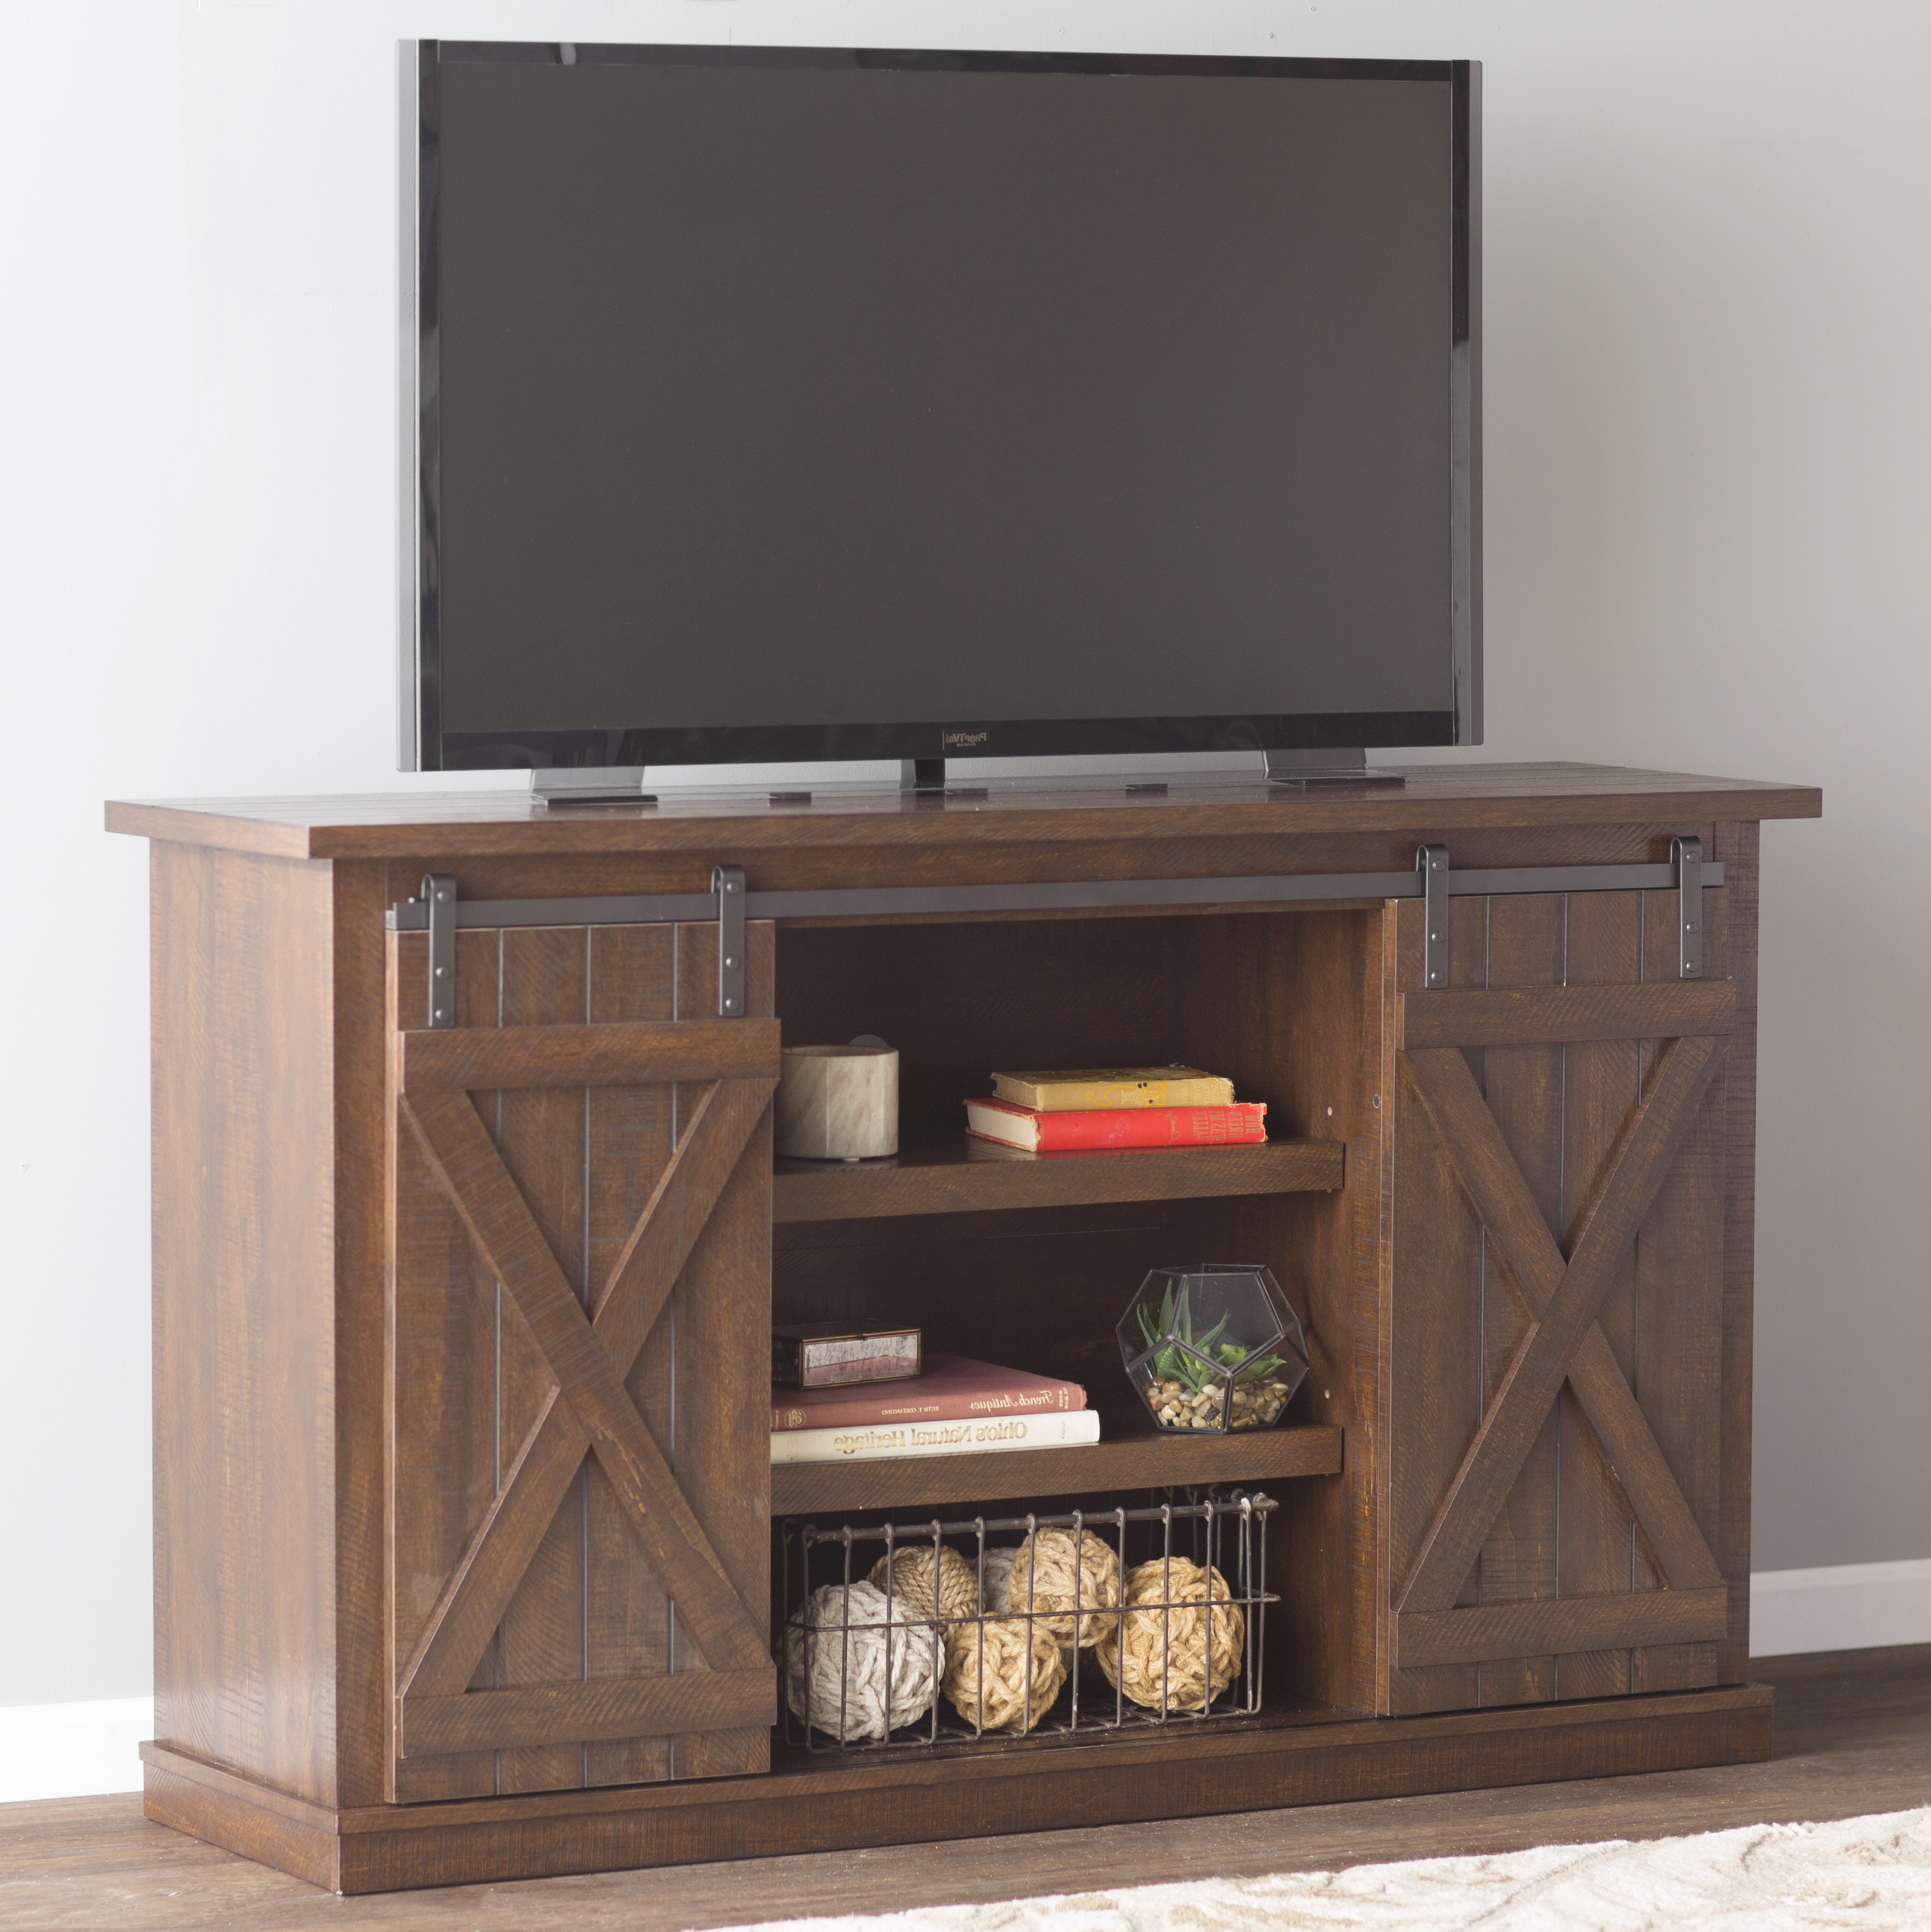 Sinclair White 74 Inch Tv Stands With Regard To Well Liked Tv Stands & Entertainment Centers You'll Love (View 16 of 20)